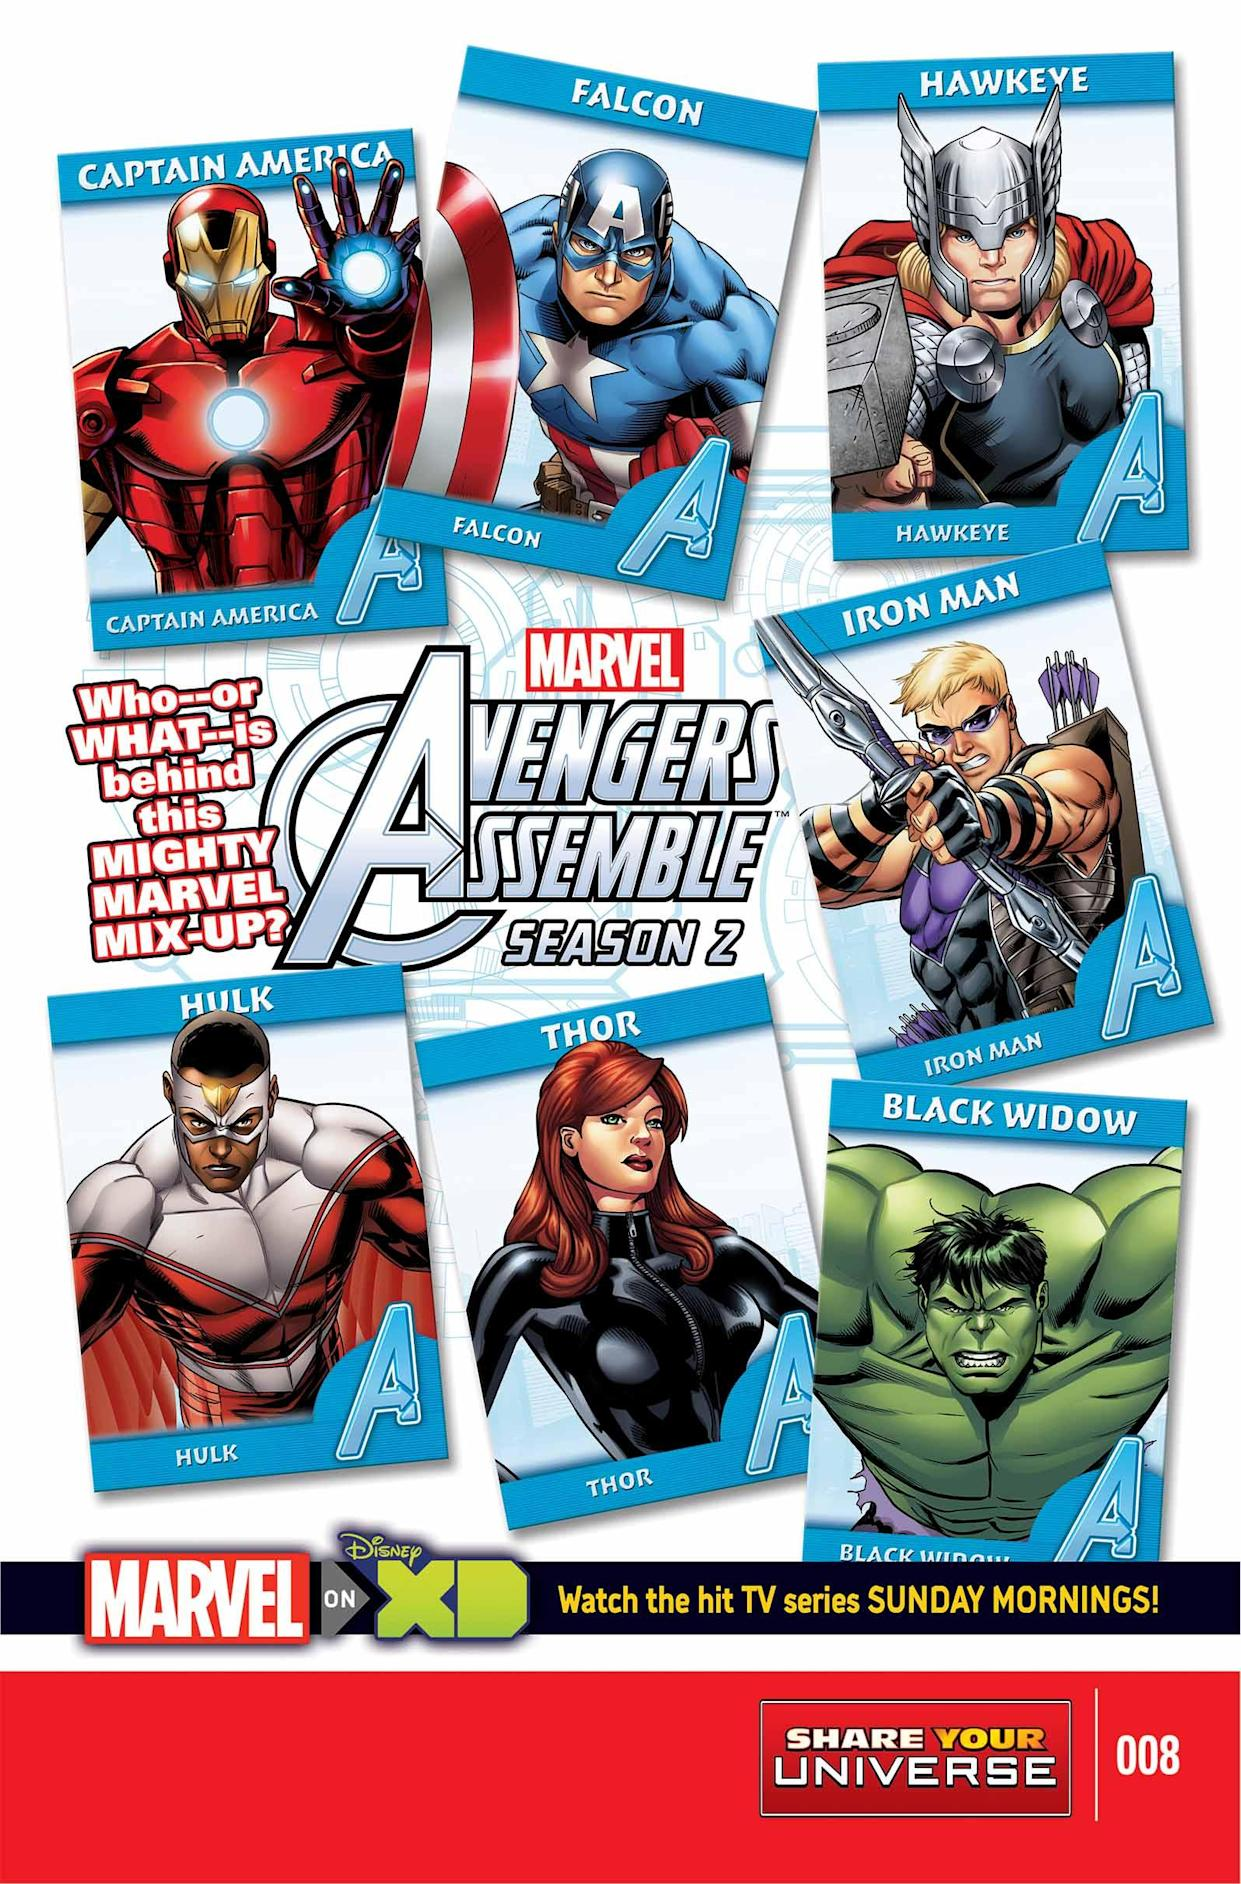 Marvel Comics June 2015 Covers and Solicitations